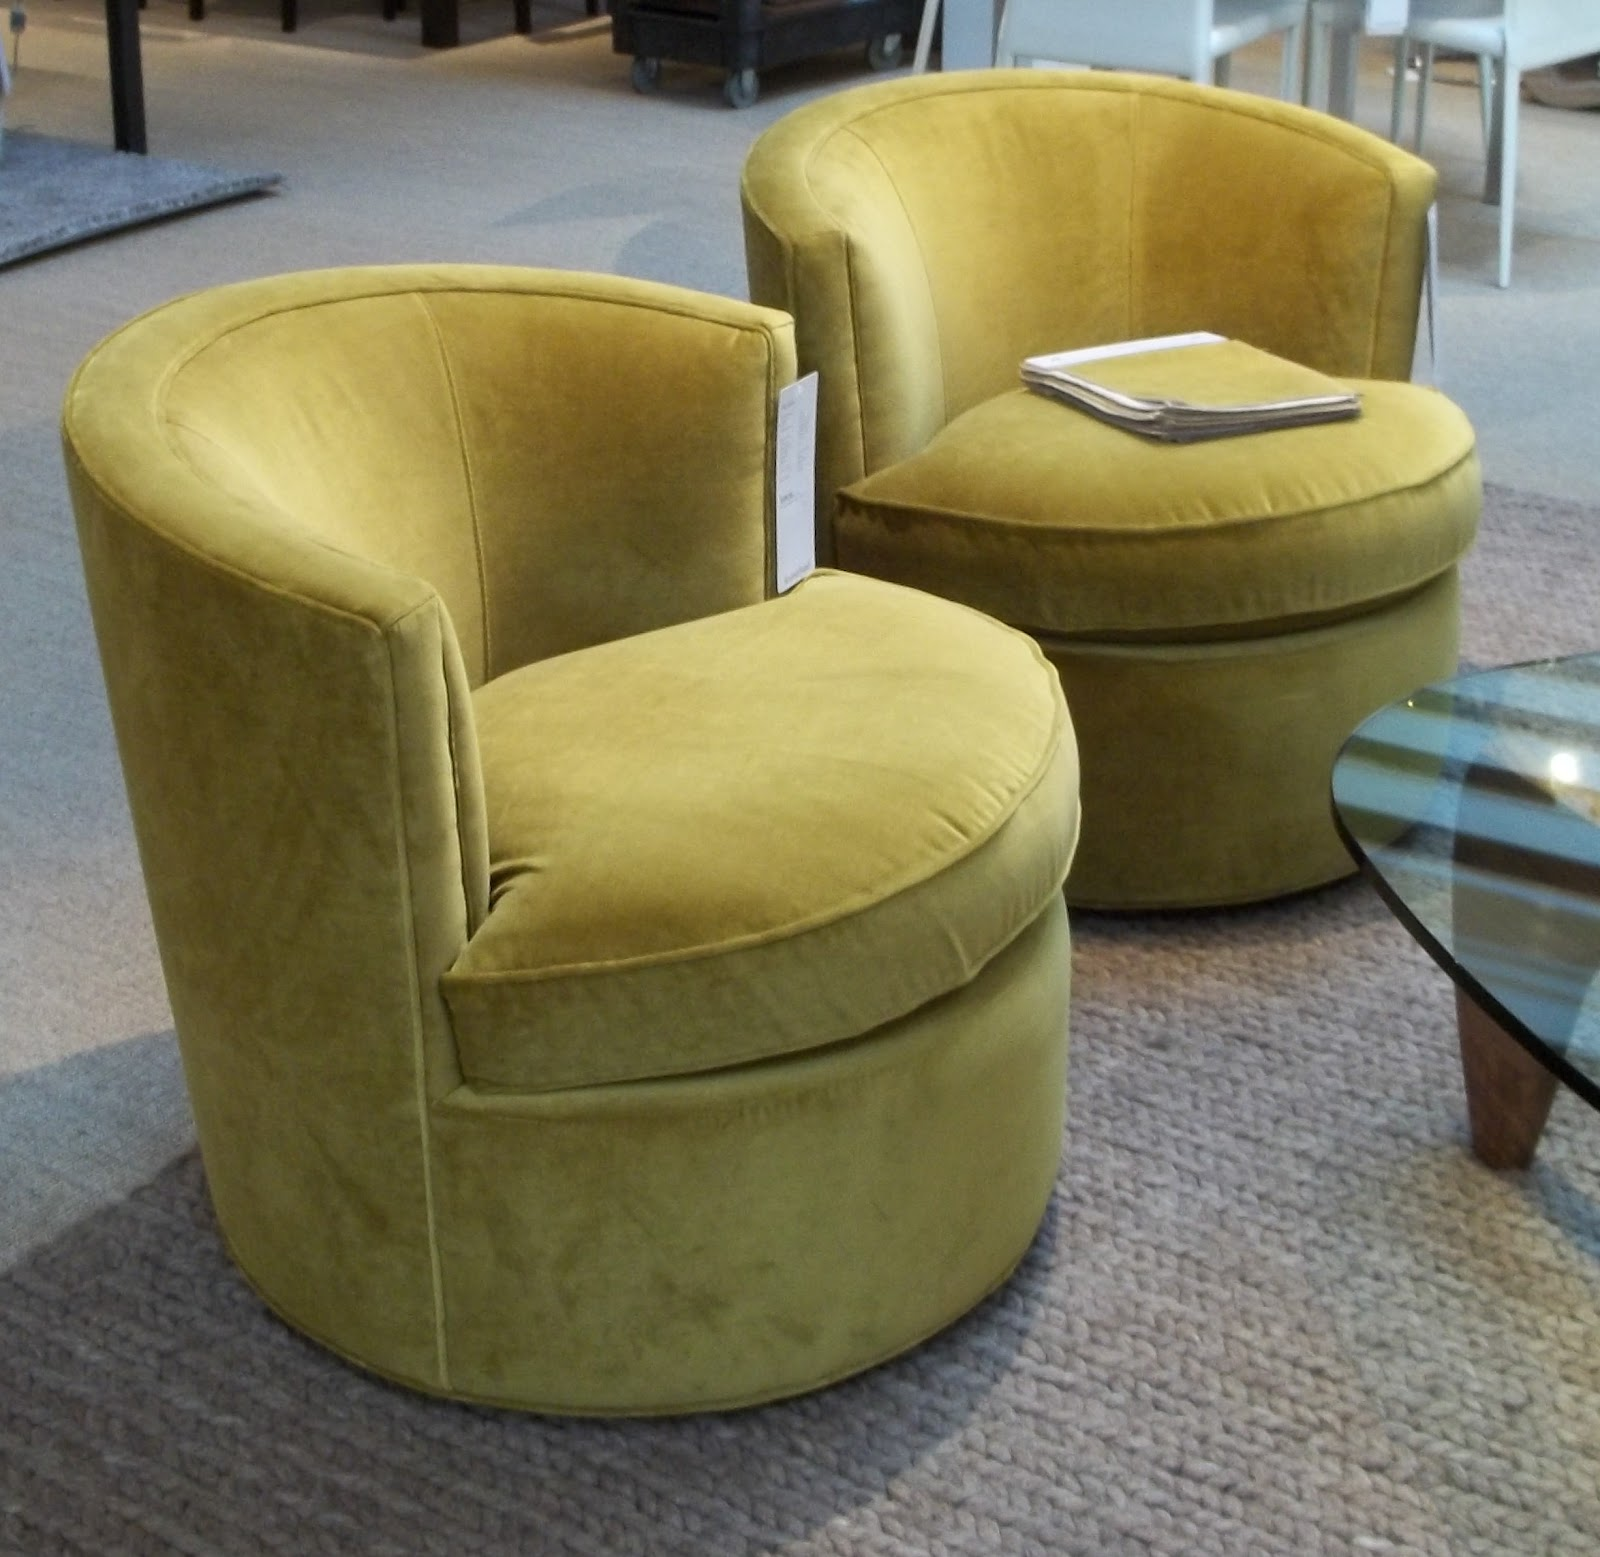 Otis Chairs May Have Been Around For A Few Years But They Re Fresh With Dazzling New Range Of Colorful Velvet Upholstery Options From Mustard Shown